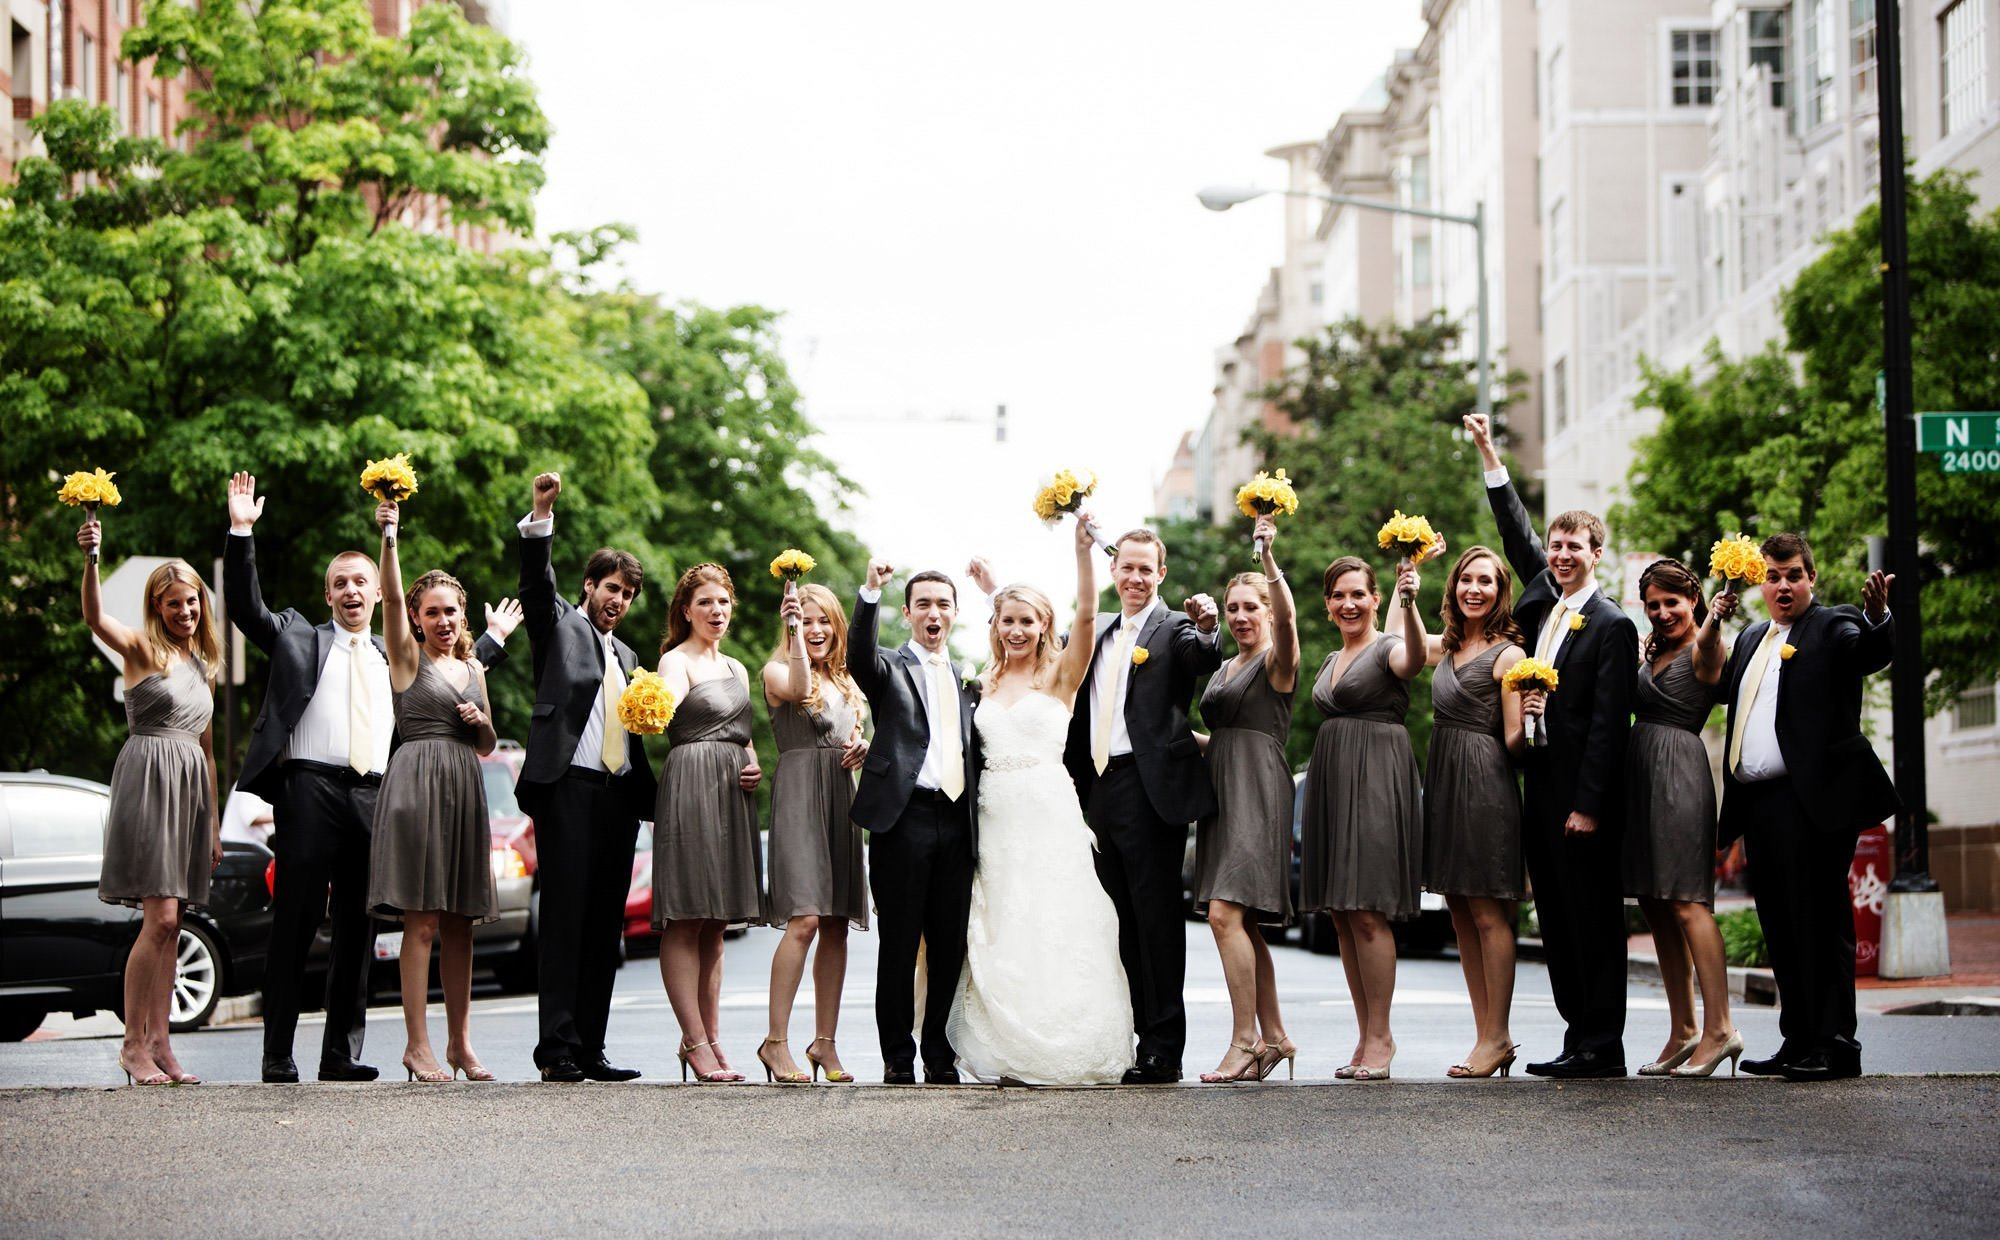 The wedding party poses in the street in Washington DC.